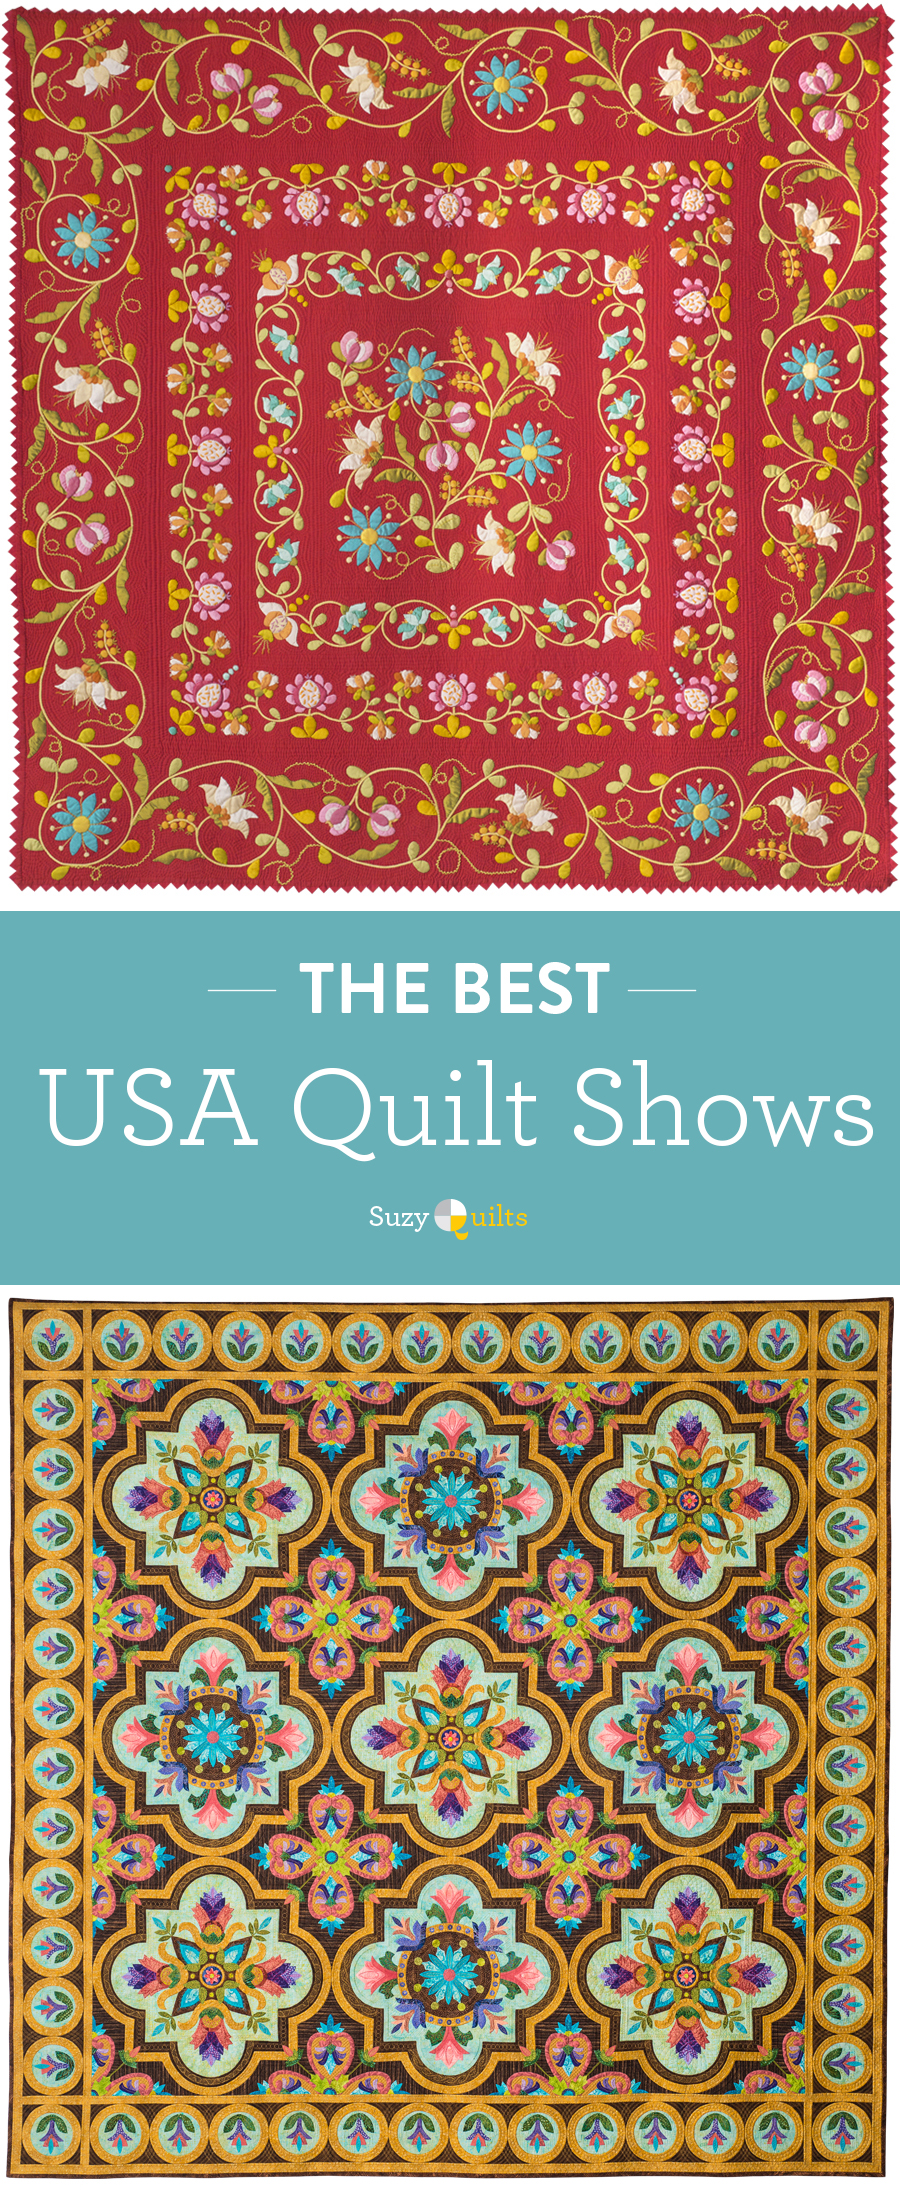 Best-USA-quilt-shows